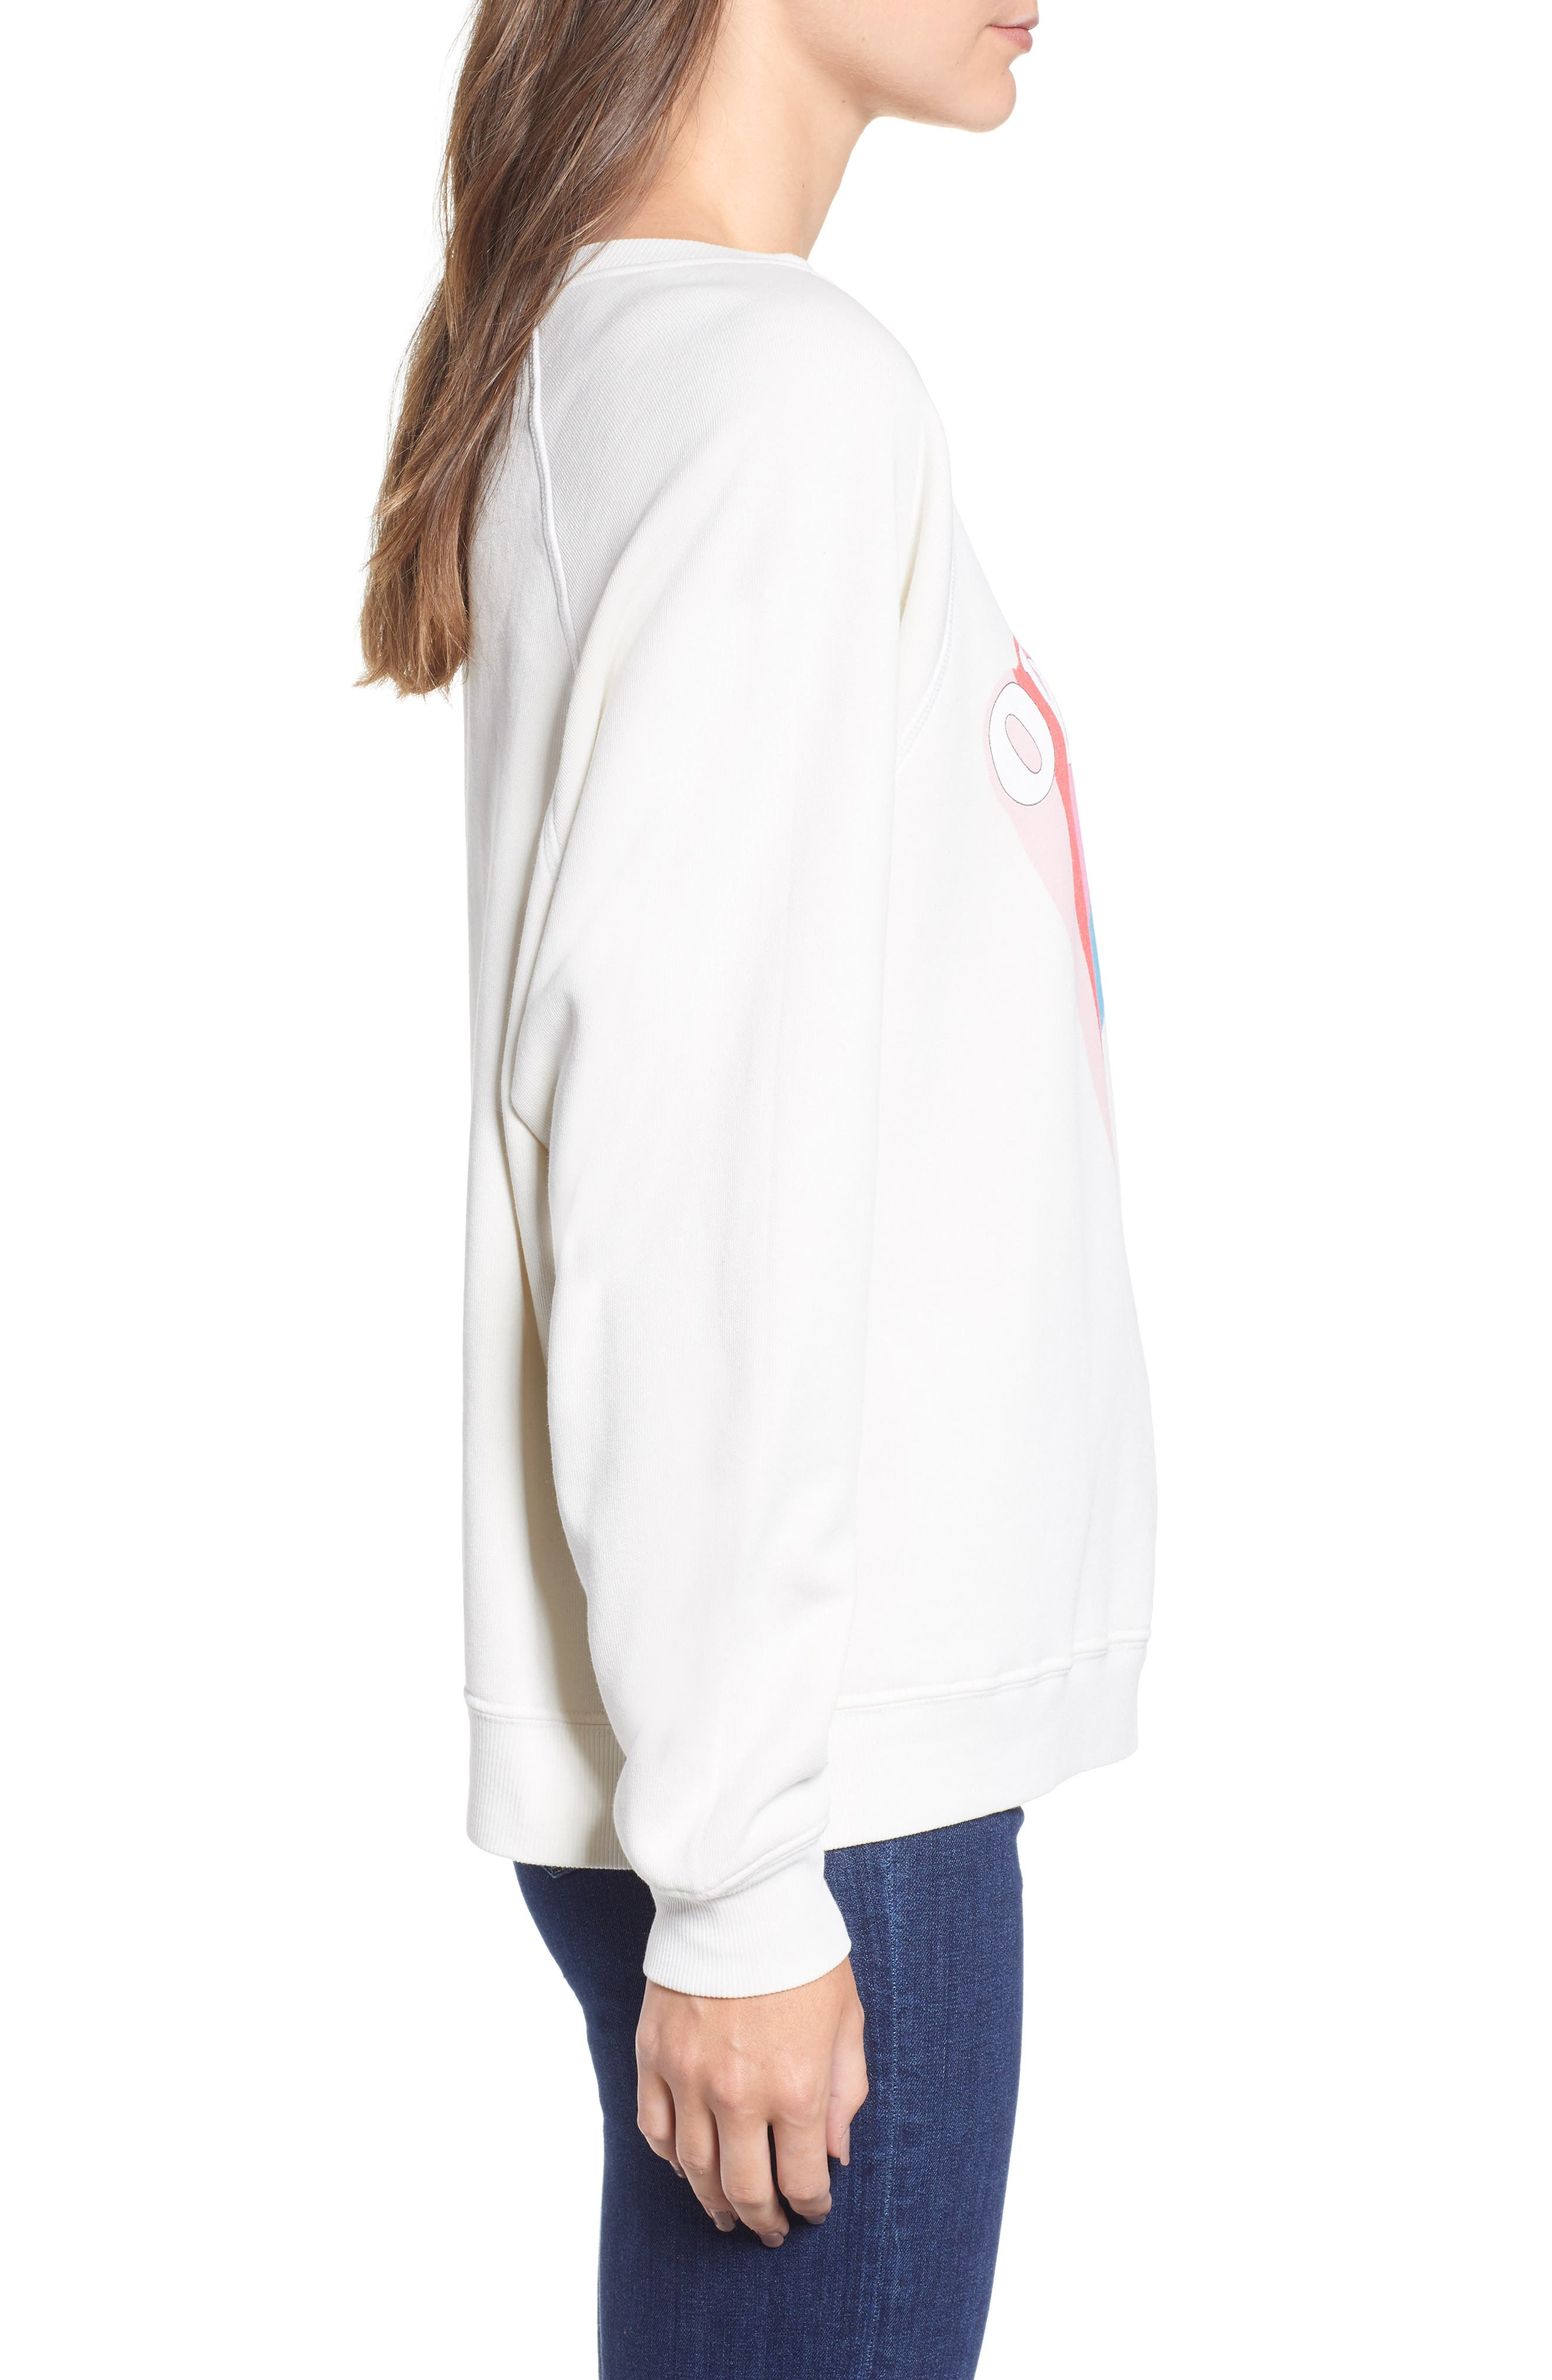 Sommers - Over It Sweatshirt,                             Alternate thumbnail 3, color,                             101